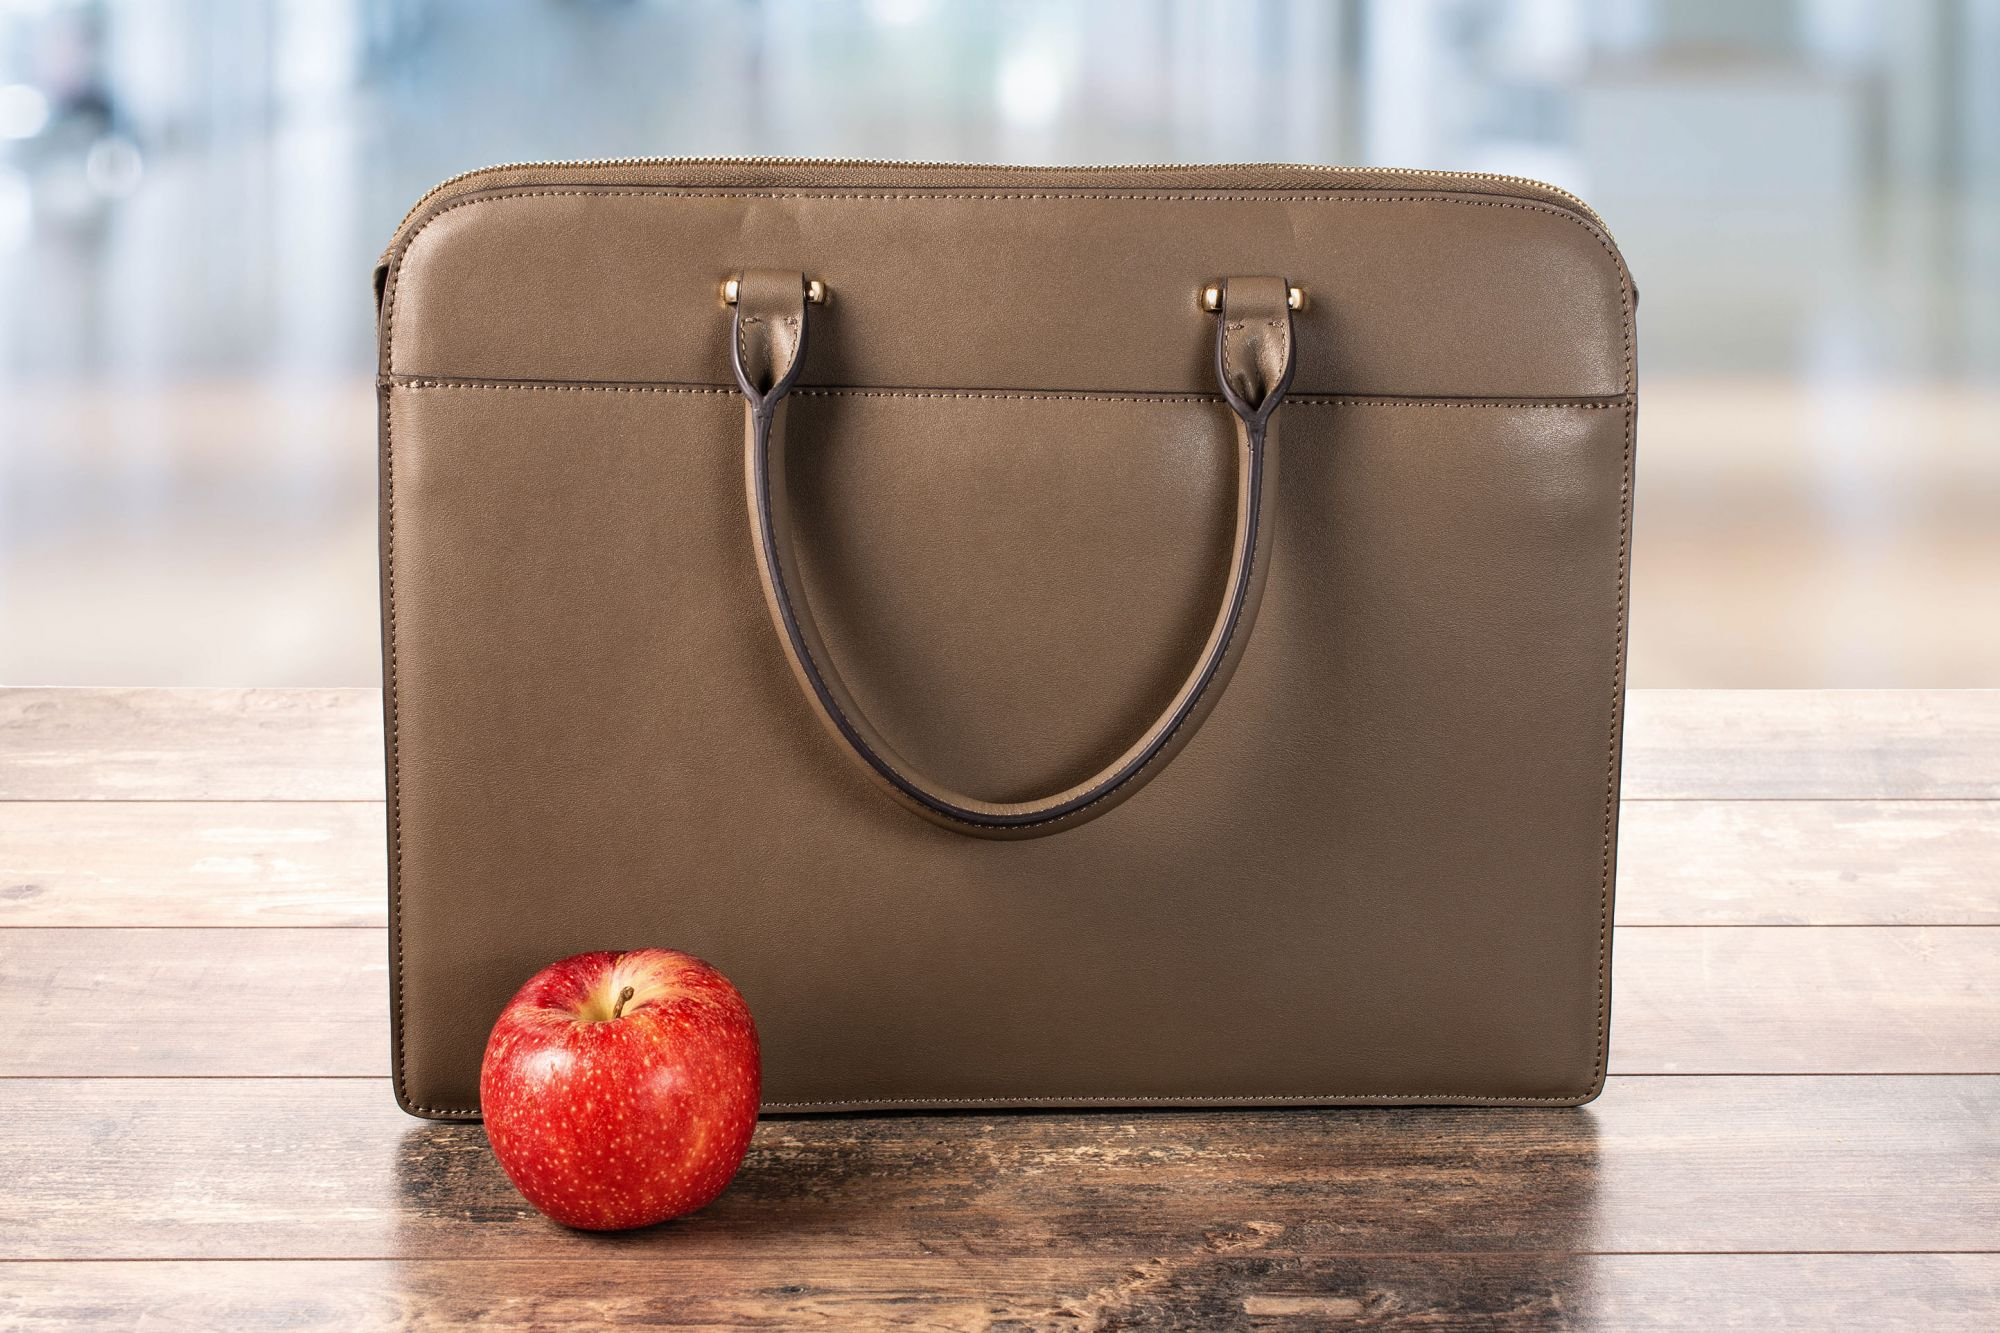 business bag, briefcase and red apple on a wooden table on a blurry background. proper nutrition at work in the office. Diet And healthy Food in the office; Shutterstock ID 1856322349; Purchase Order: ETX/Relaxnews/Fil; Client/Licensee: Arnaud POURPOINT